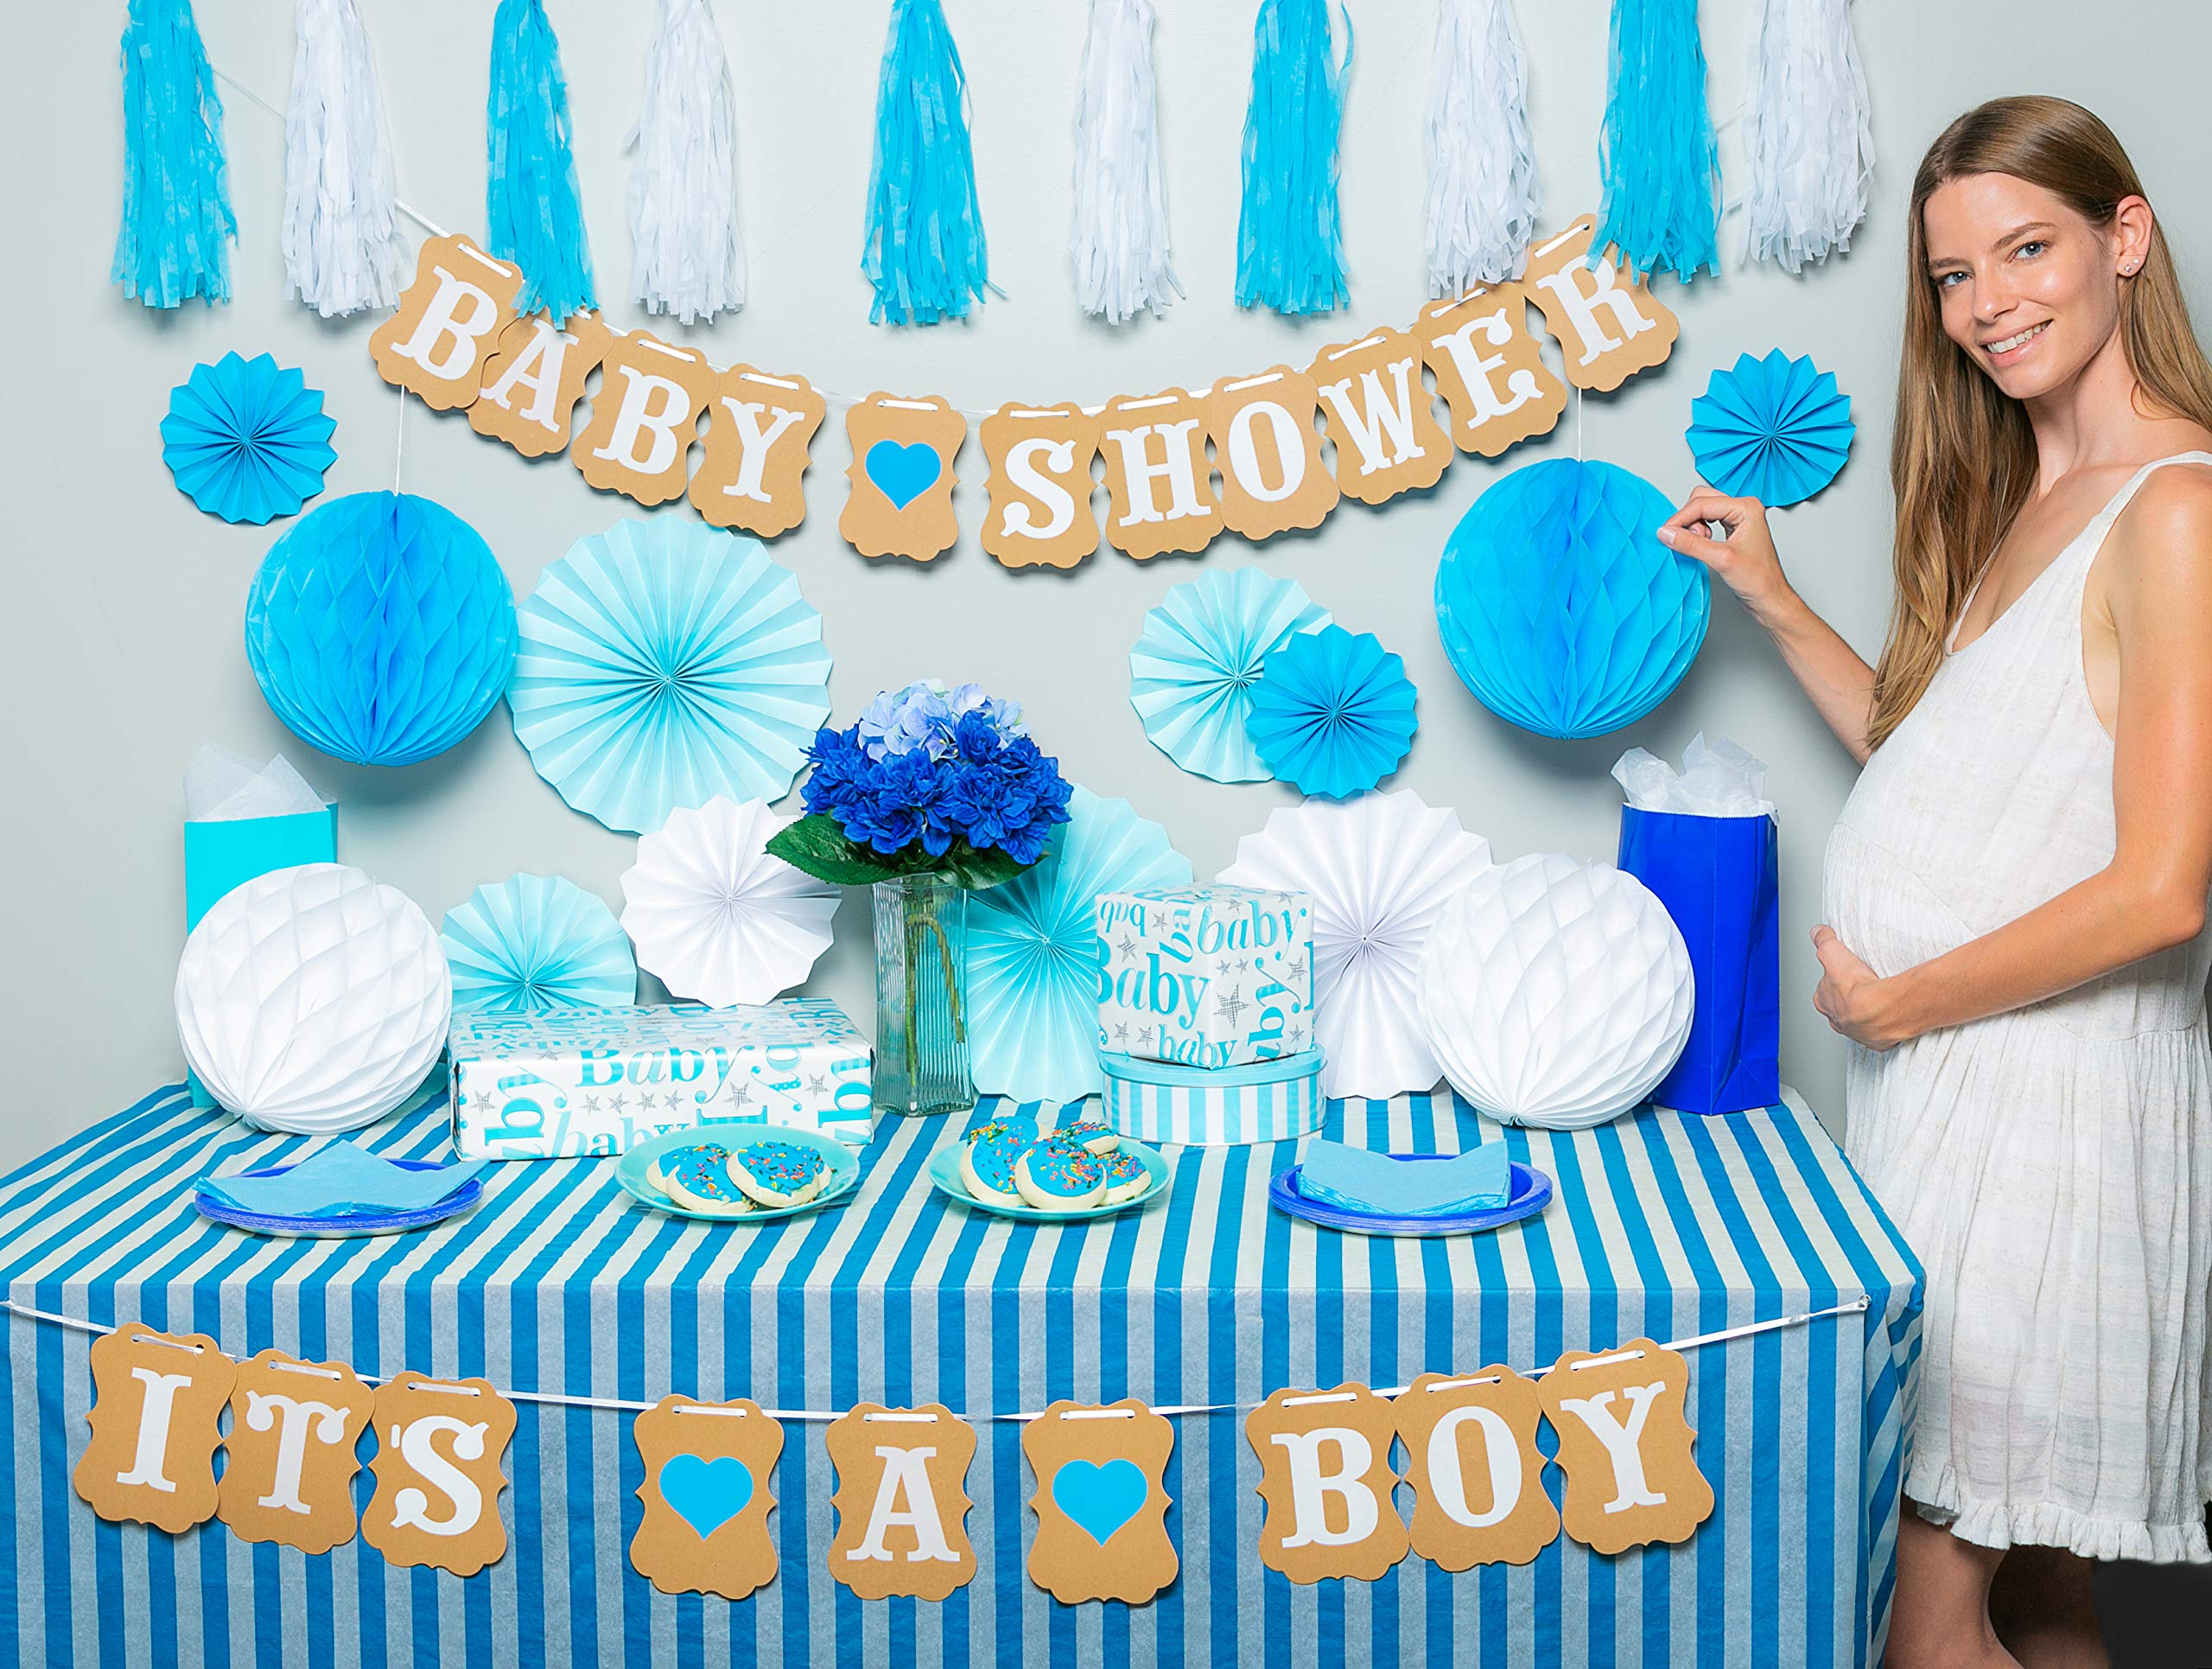 Premium baby shower decorations for boy Kit | It's a boy baby shower decorations with striped tablecloth, 2 banners, paper fans, and honeycomb balls | complete baby shower set for a beautiful baby boy by TeeMoo (Image #2)